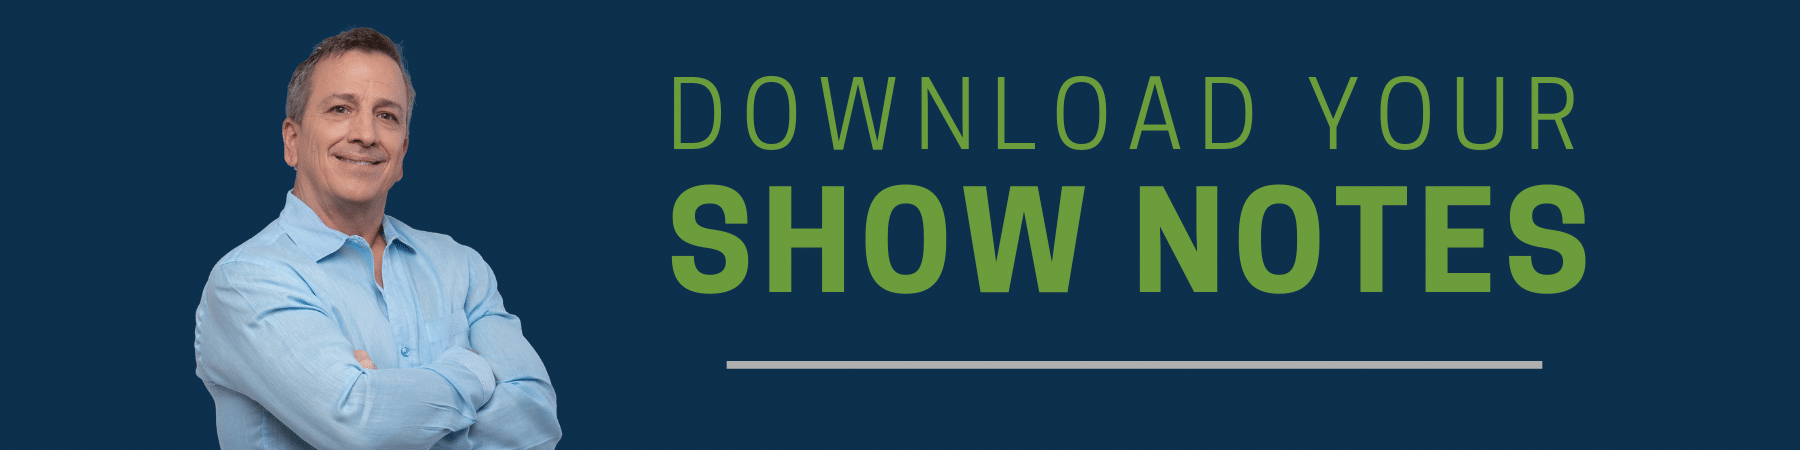 Download show notes 1800x450 1 | Ken McElroy Image